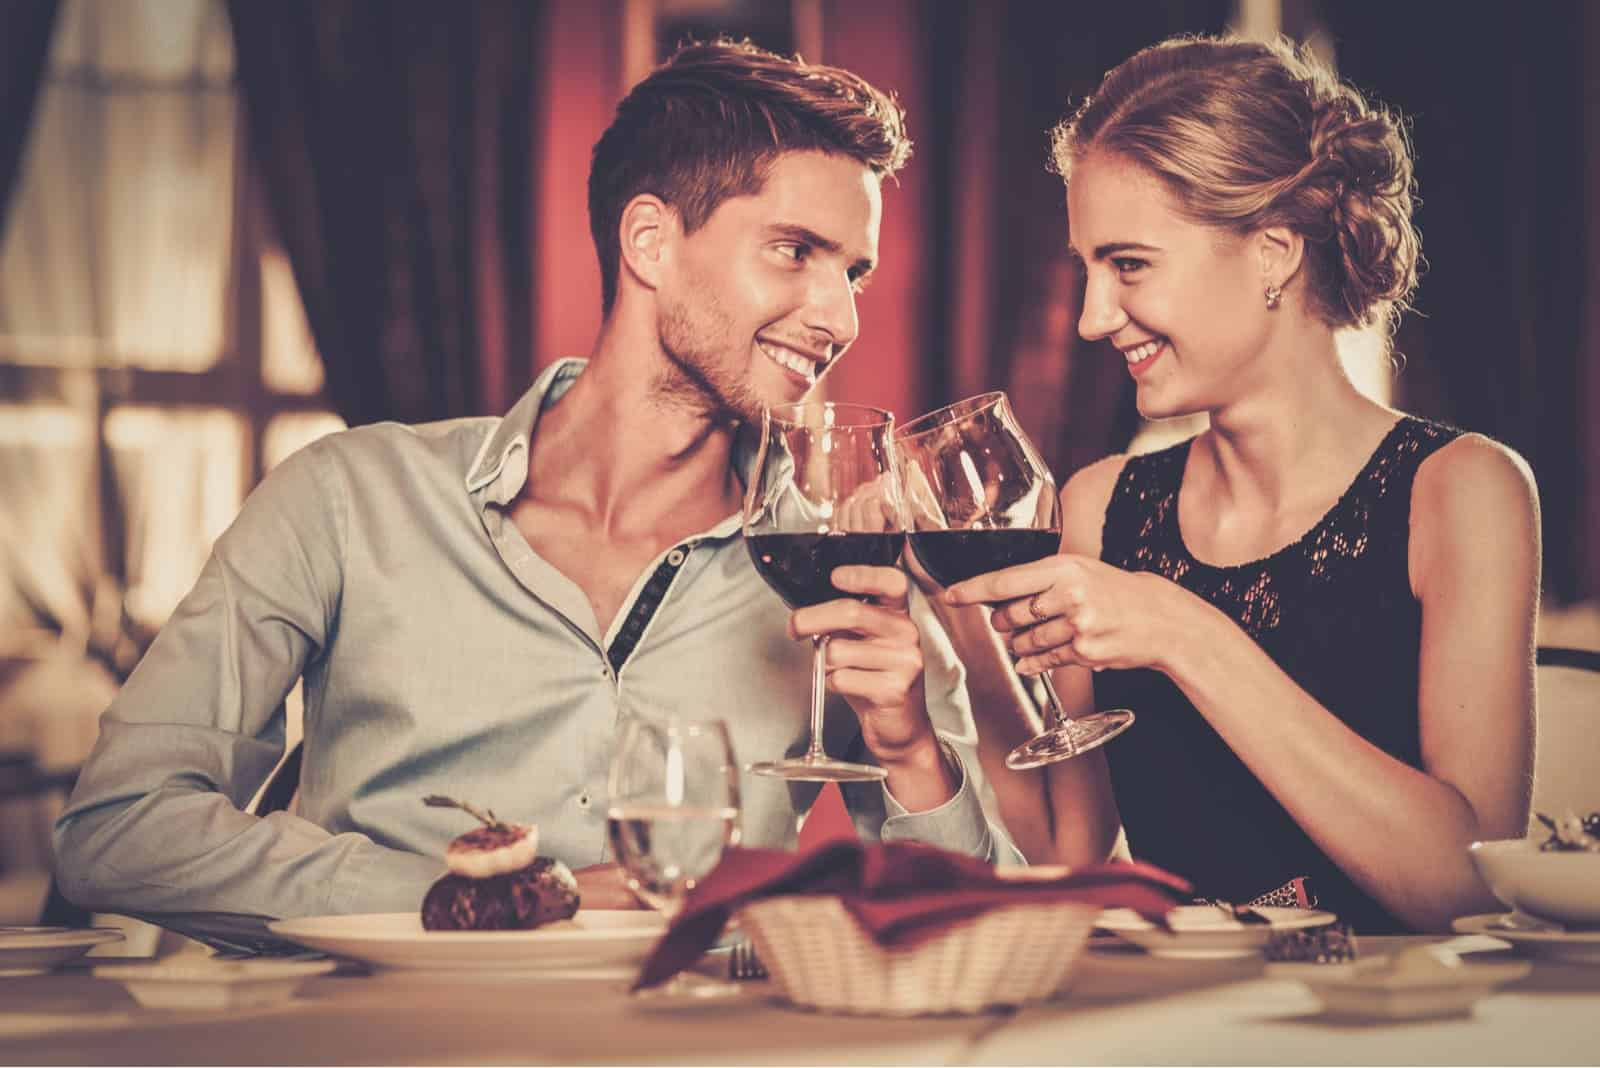 couple on date at restaurant